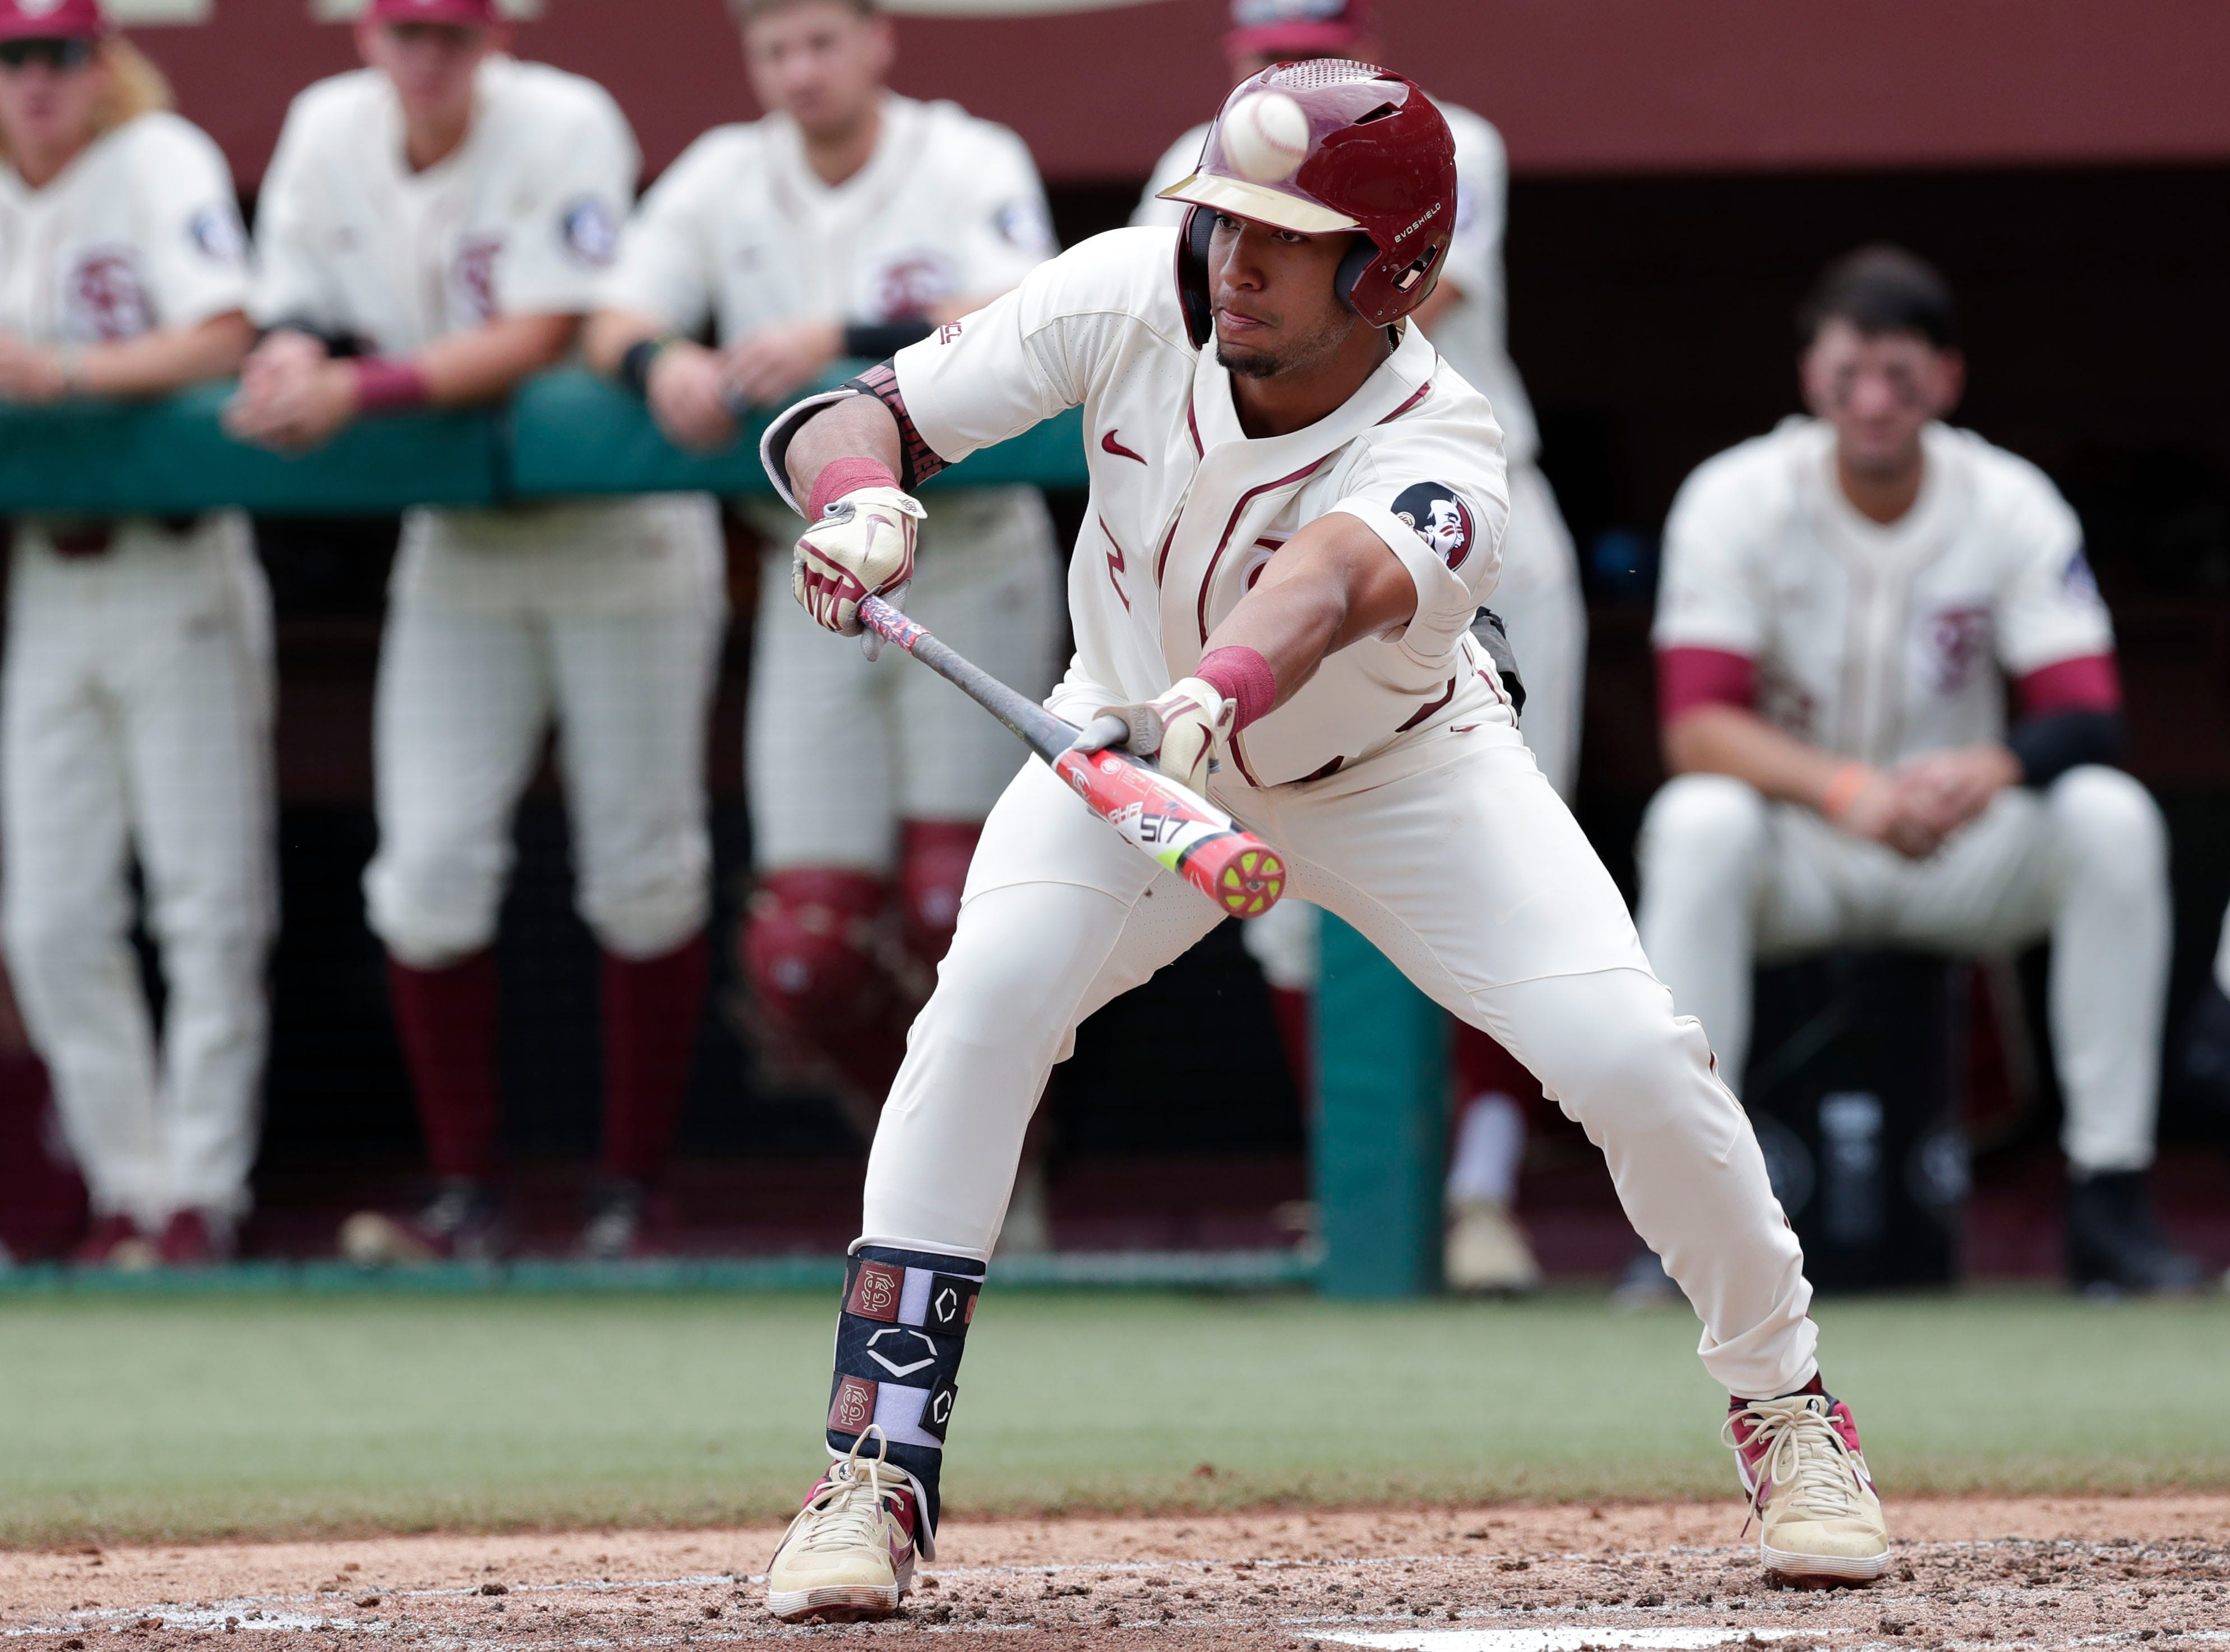 Florida State Seminoles infielder Nander De Sedas (2) tries to bunt the ball but ends up with a foul ball as the Florida State Seminoles host the Maine Black Bears for the second game of the series, Saturday Feb. 16, 2019.